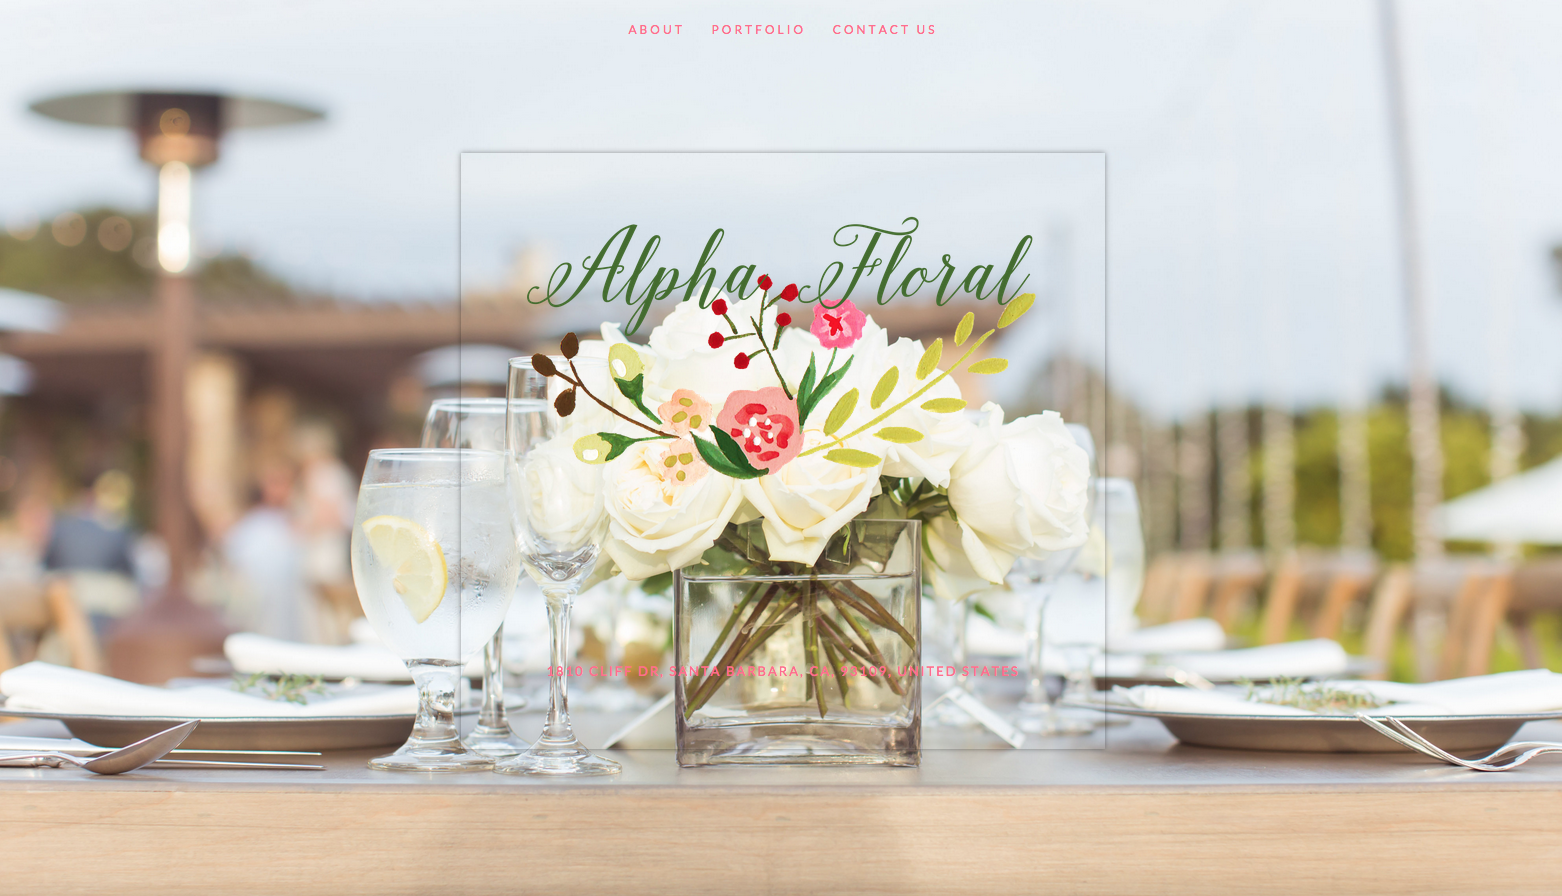 Alpha Floral Website Design by Heather Sharpe of The Editor's Touch